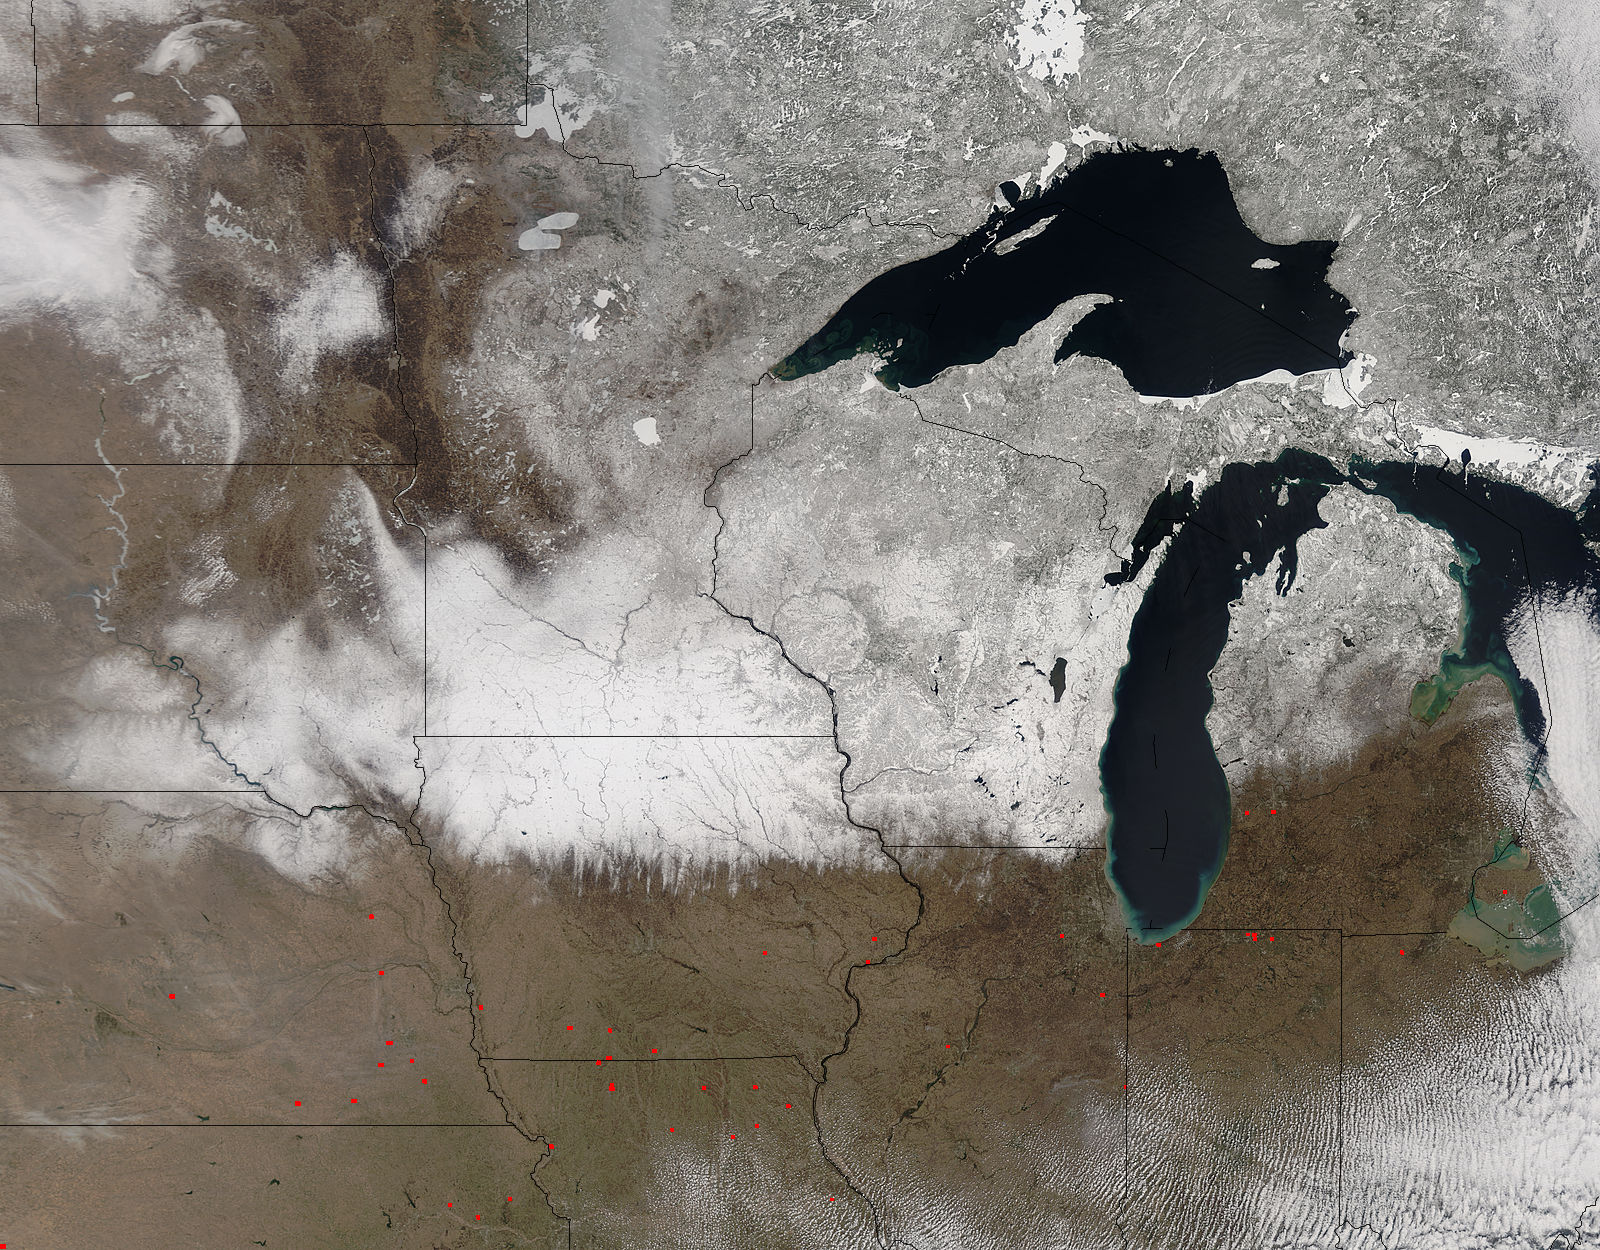 Spring snow across the upper midwest United States - related image preview